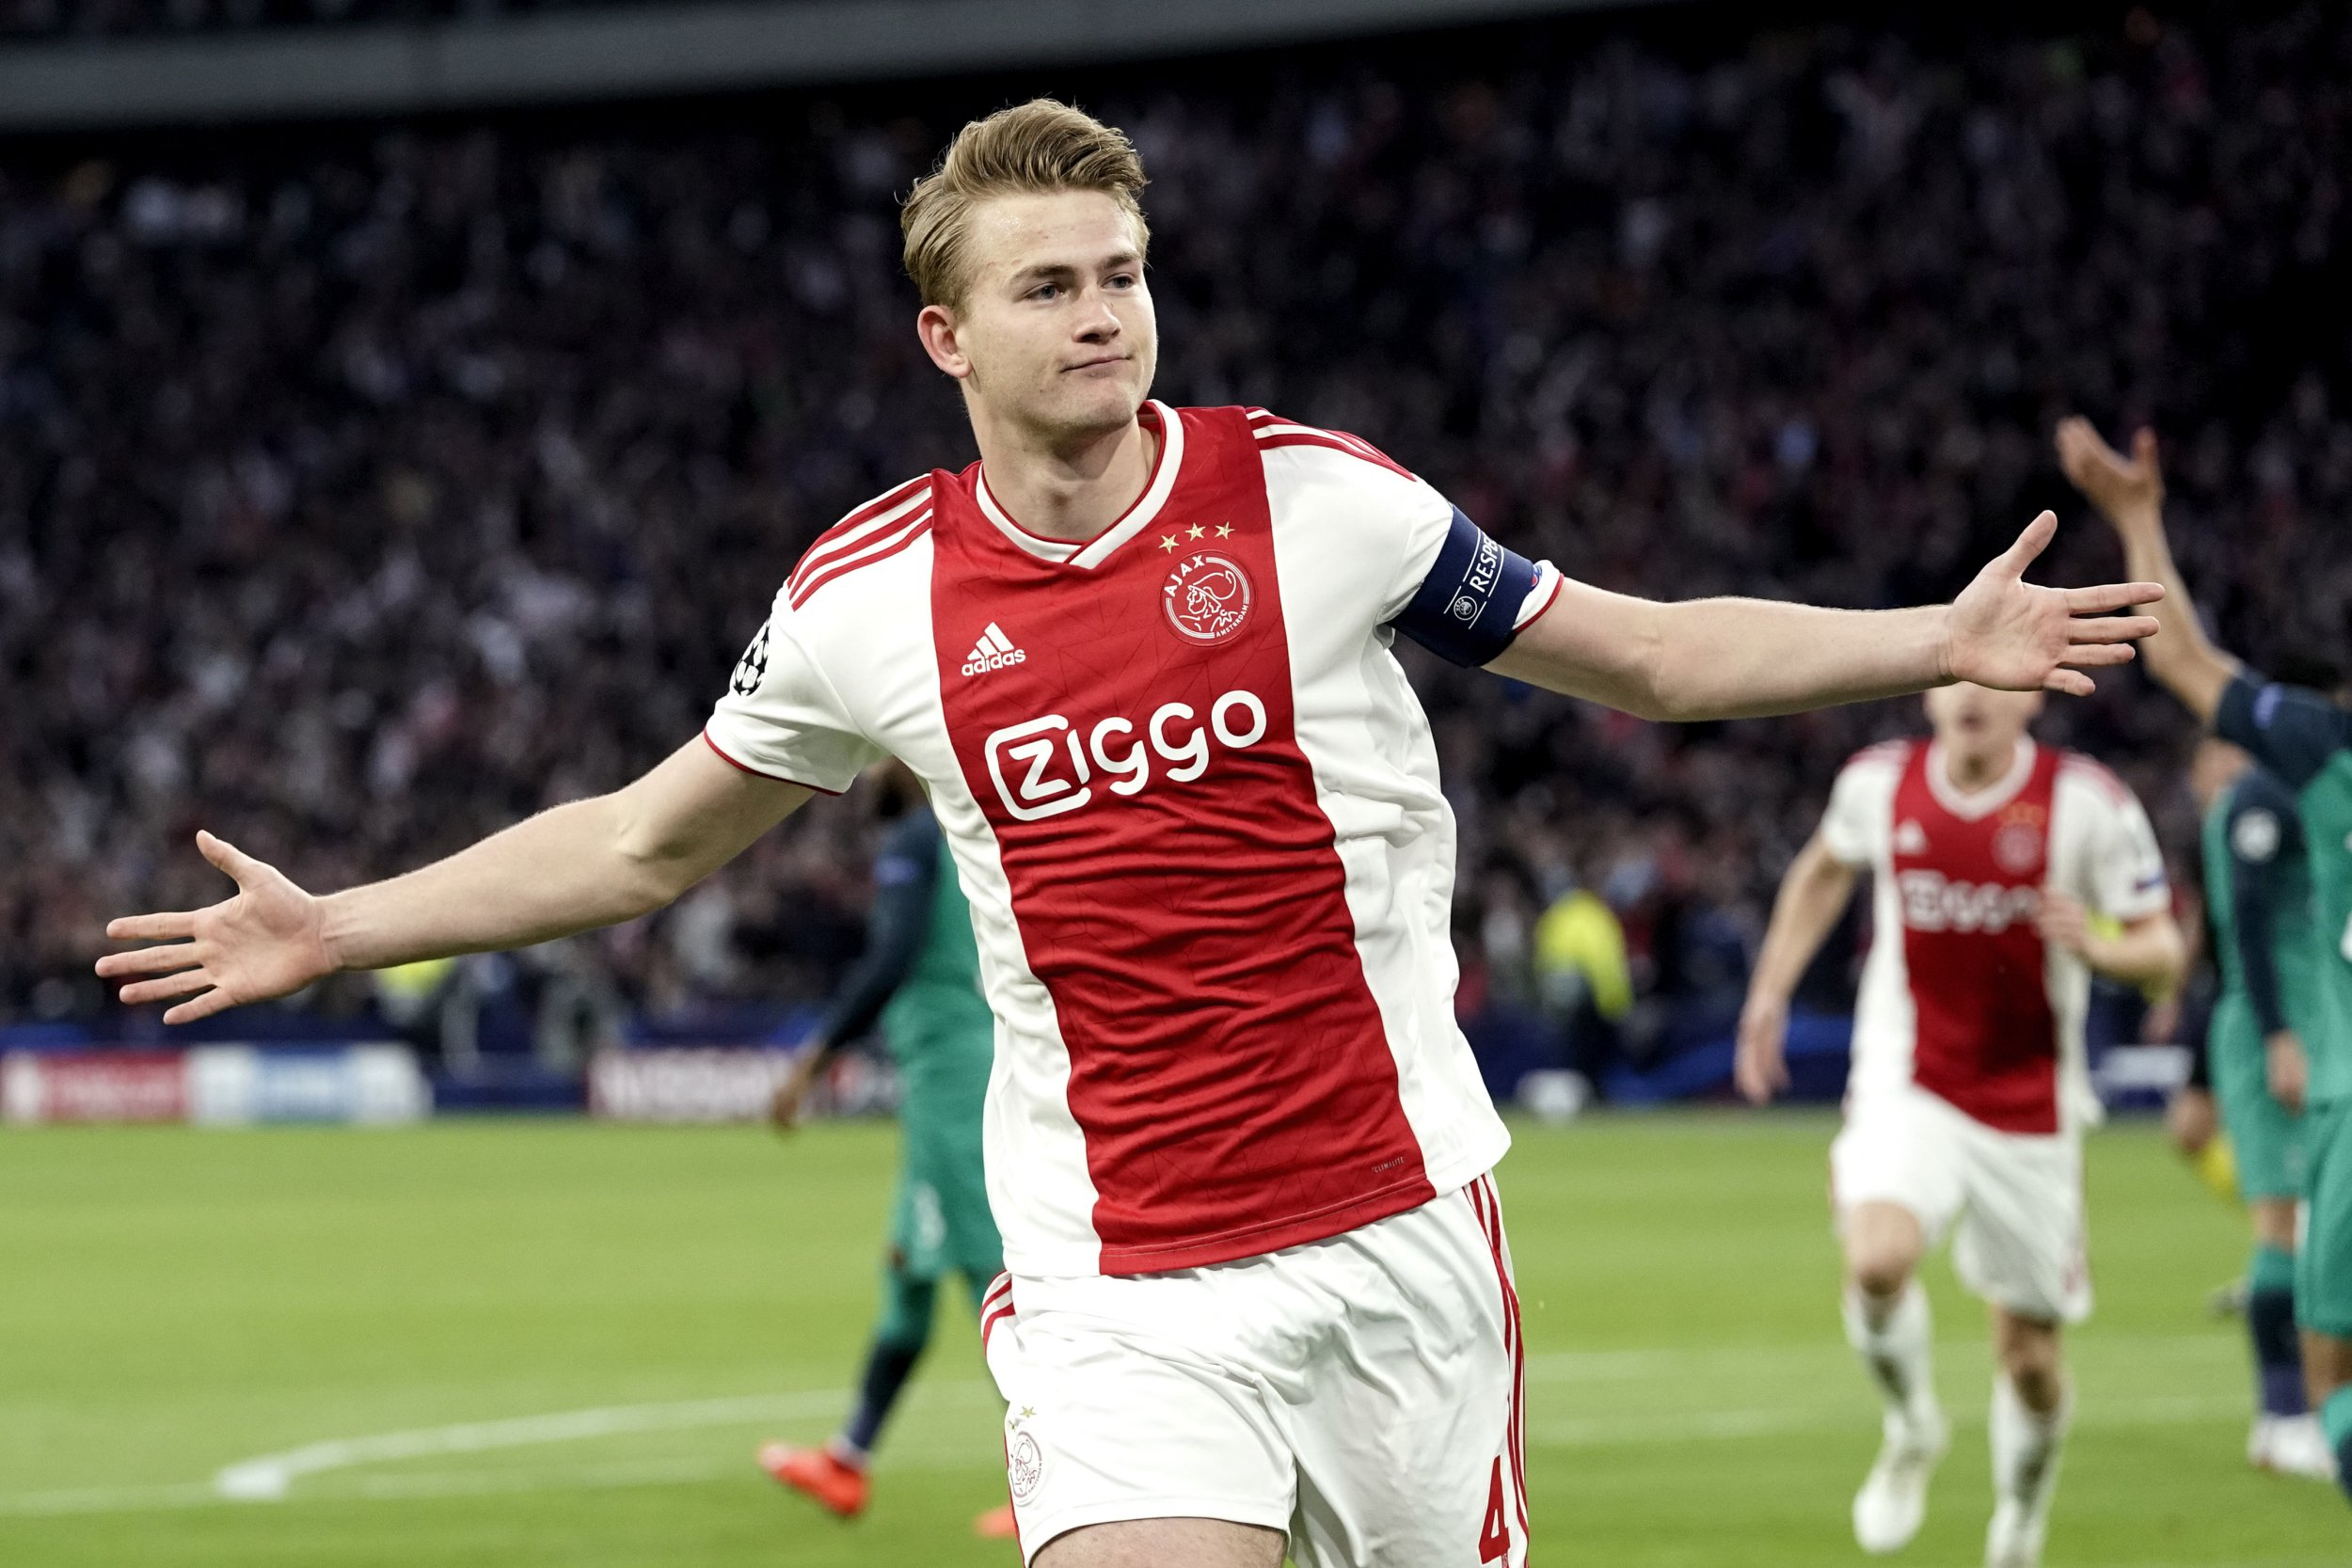 Liverpool 'have been talking to' Matthijs de Ligt over summer transfer from Ajax